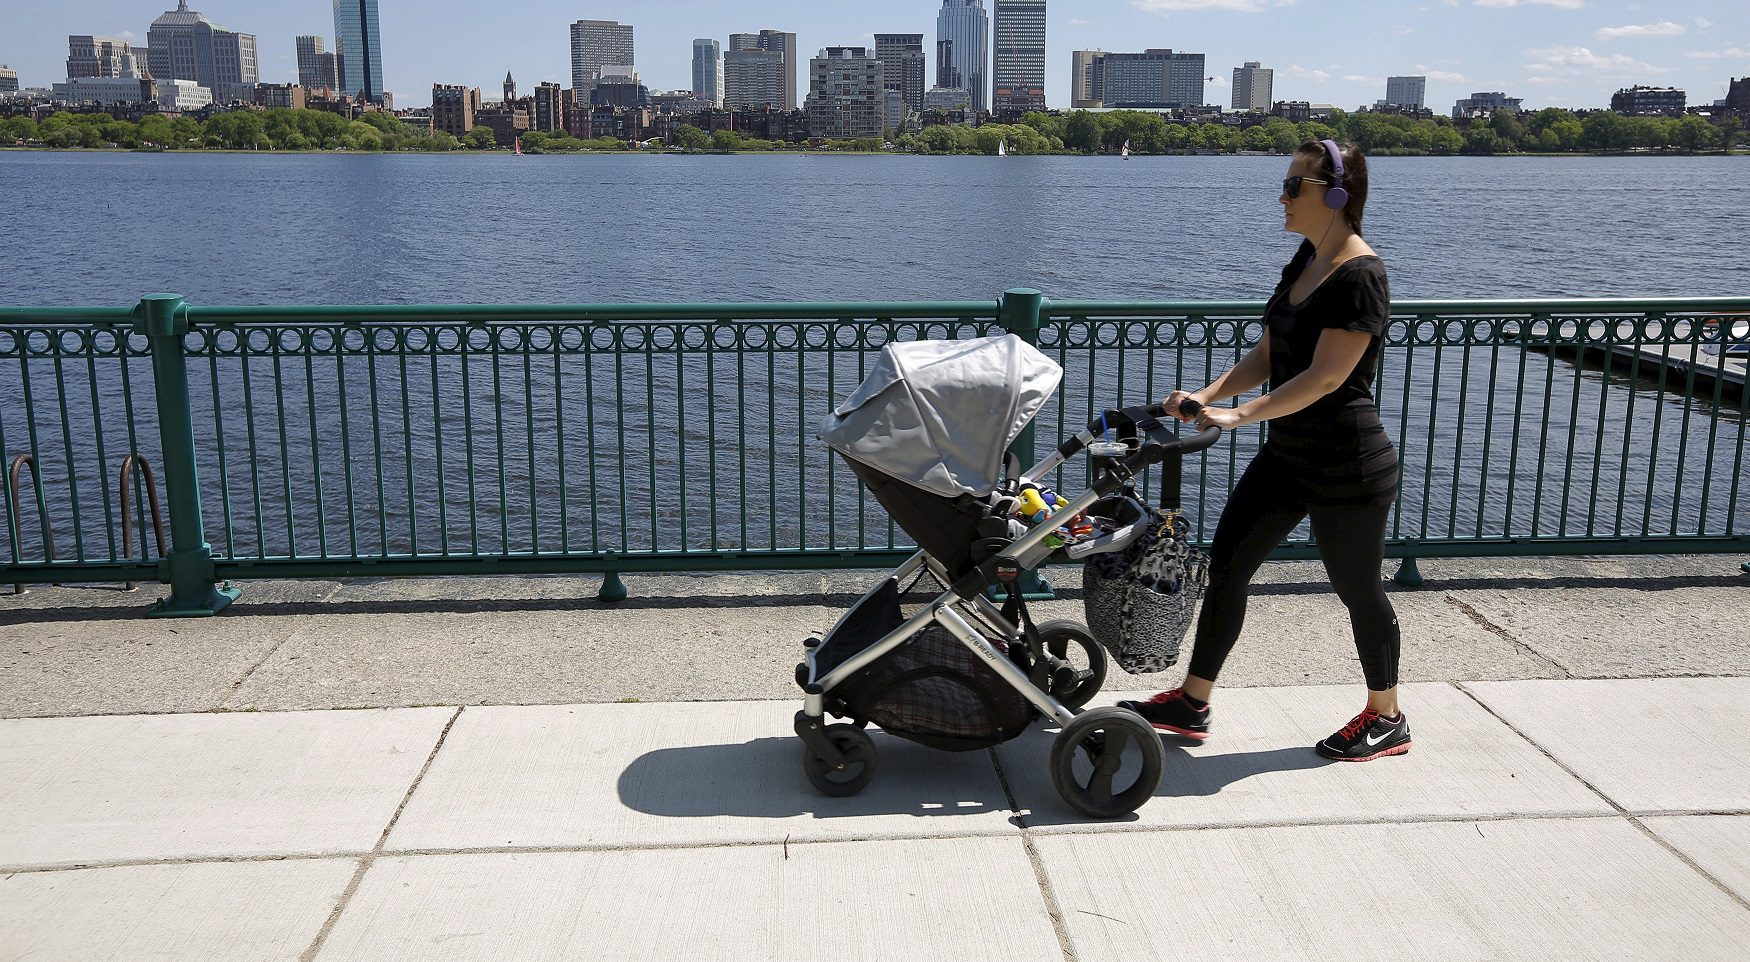 "A woman pushes a baby stroller along the Charles River past the Boston skyline in Cambridge, Massachusetts, United States June 10, 2015. Outdoor scenes in Boston show local residents enjoying balmy weather amid lush greenery as the summer solstice approaches on 21 June. The very same locations suffered heavy snowstorms last winter, with snow ploughs, skiers and snowboarders battling the drifts. Boston got 275.8 cm of snow over the winter, the most since 1872, when records began. A few months after the snowstorms, Brian Snyder revisited the same places and shot pictures at exactly the same locations. REUTERS/Brian Snyder TPX IMAGES OF THE DAY PICTURE 16 OF 30 FOR WIDER IMAGE STORY ""WINTER FREEZE, SUMMER SOLSTICE"" SEARCH ""BRIAN SOLSTICE"" FOR ALL IMAGES - RTX1H856"